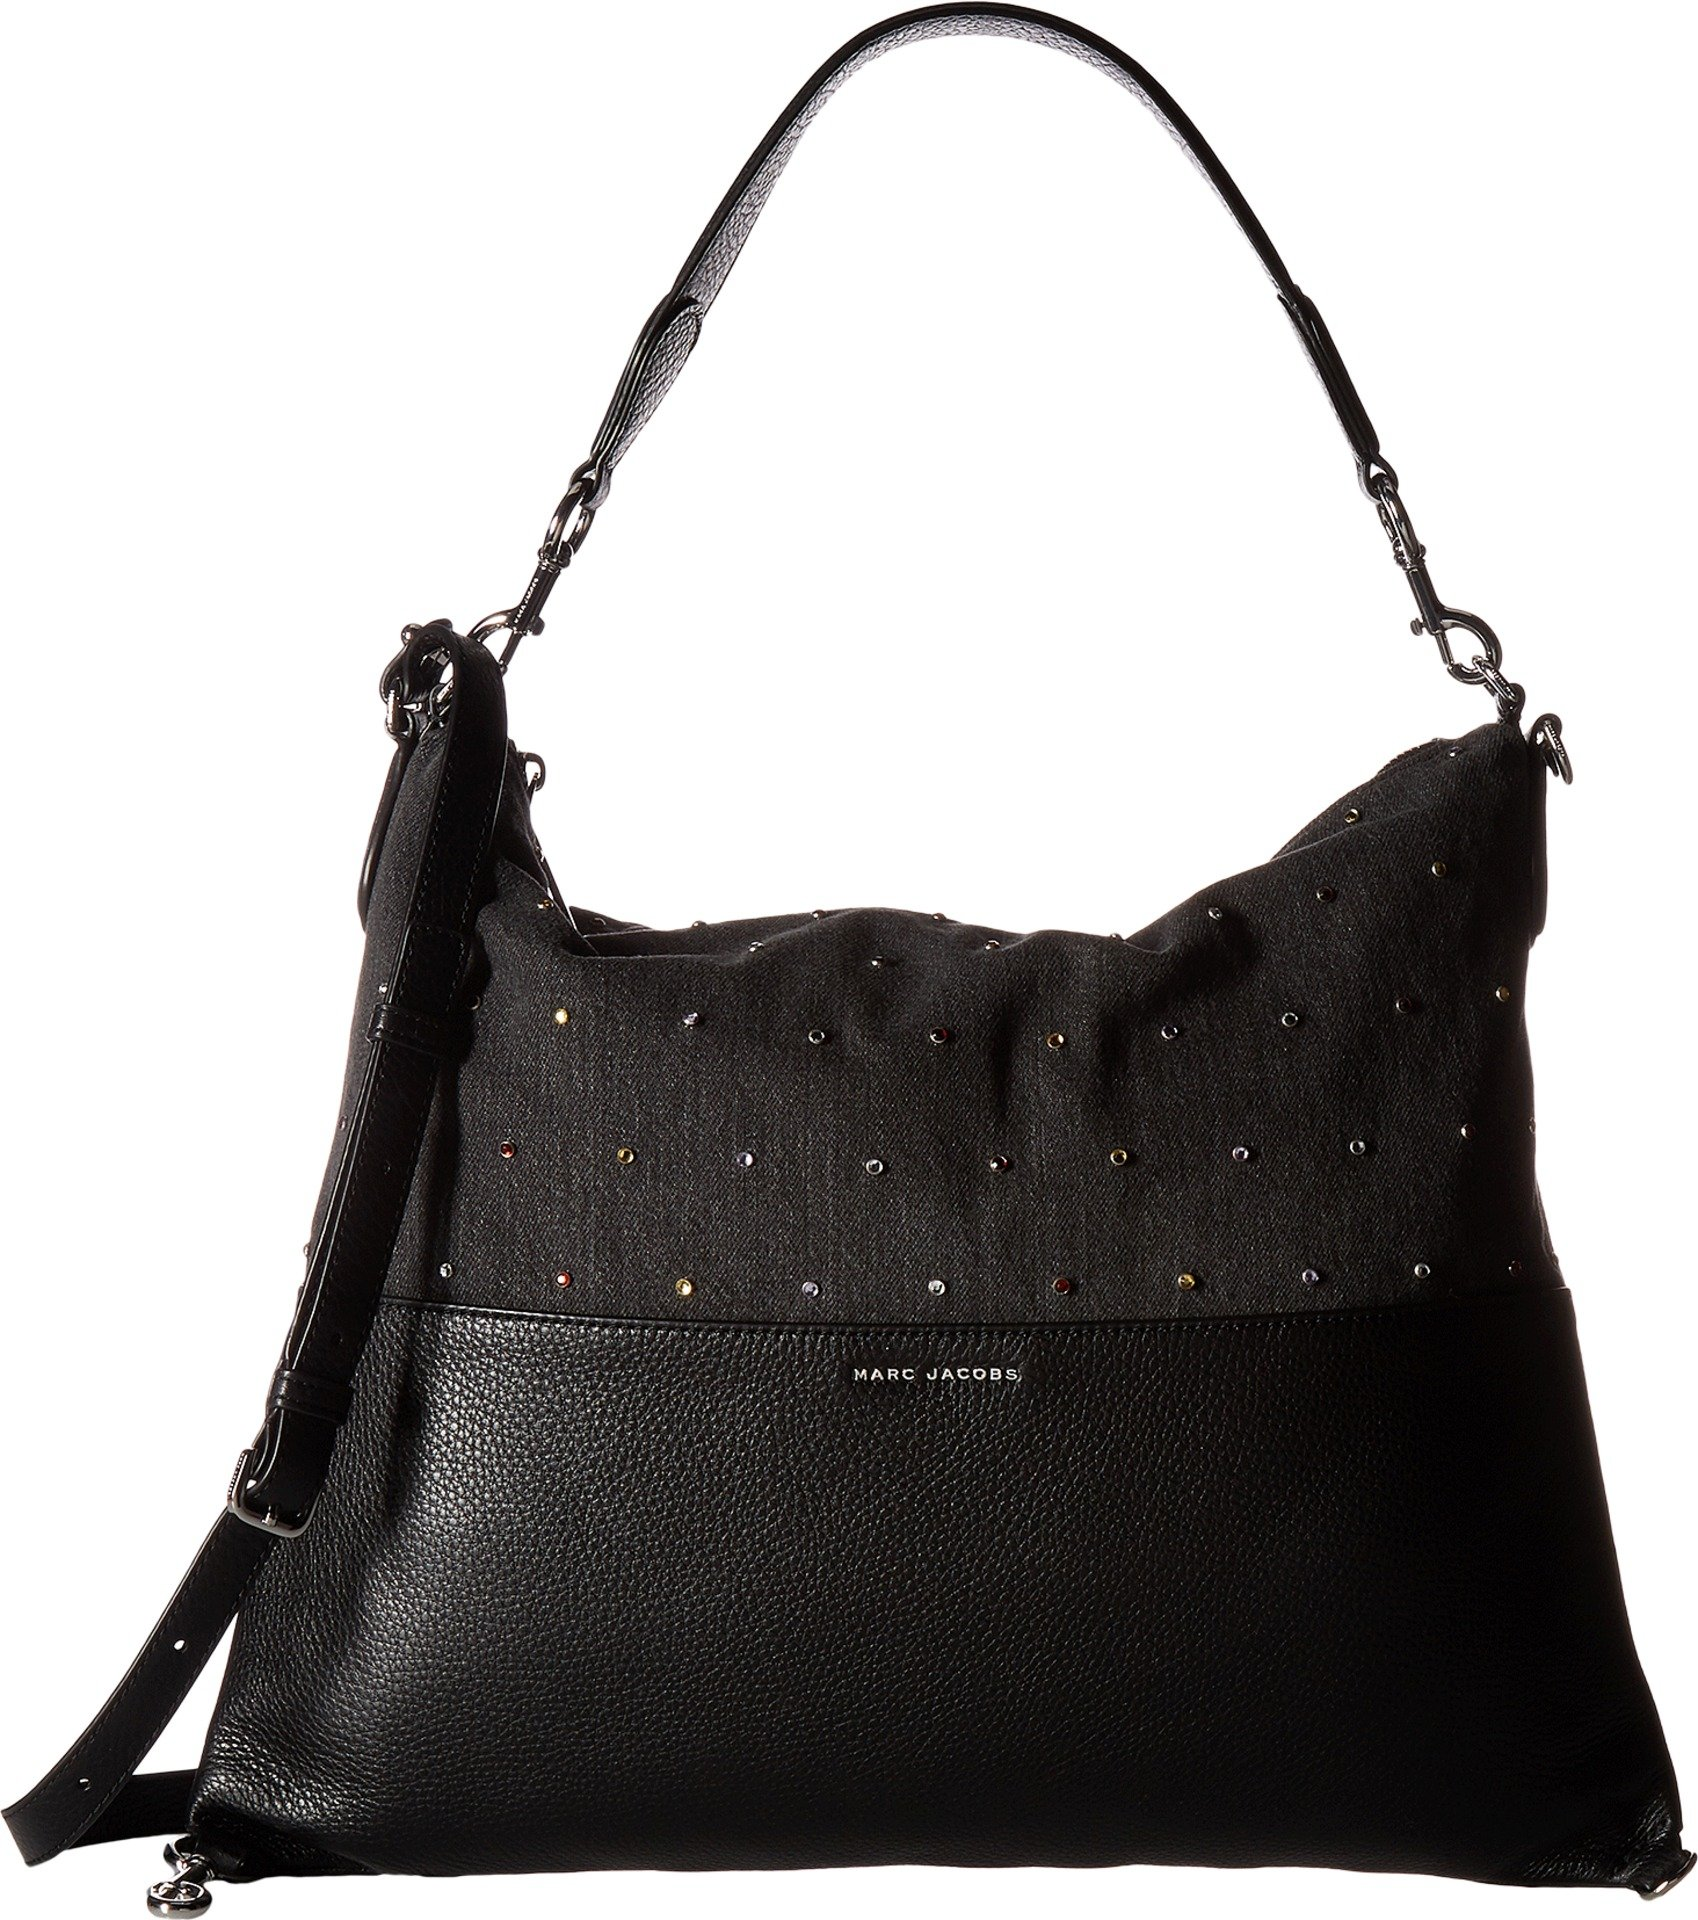 Marc Jacobs Women's Embellished Grip Satchel, Black, One Size